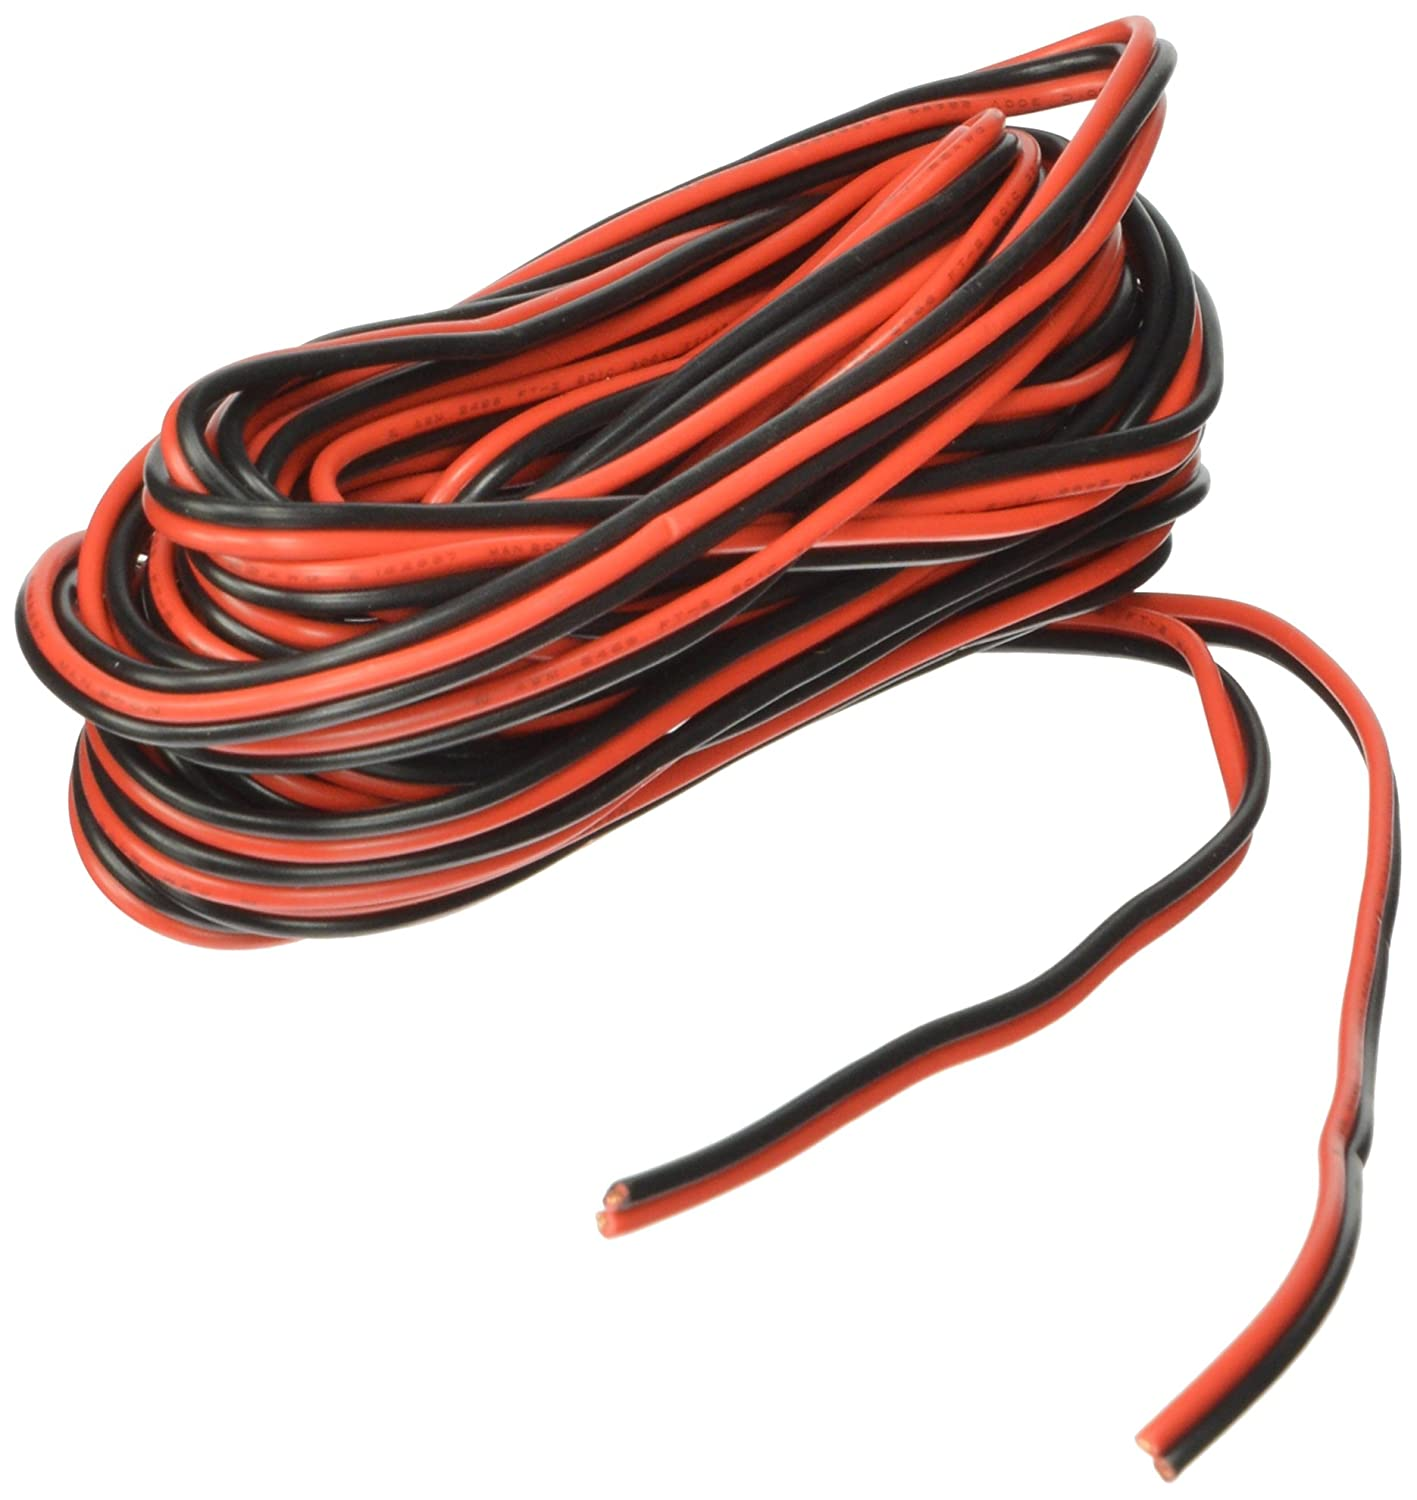 Dc Wiring Cacle Diagrams Color Coded 22 Gauge Wires Amazon Com Roadpro 25 Hardwire Replacement 2 Wire Rh Code